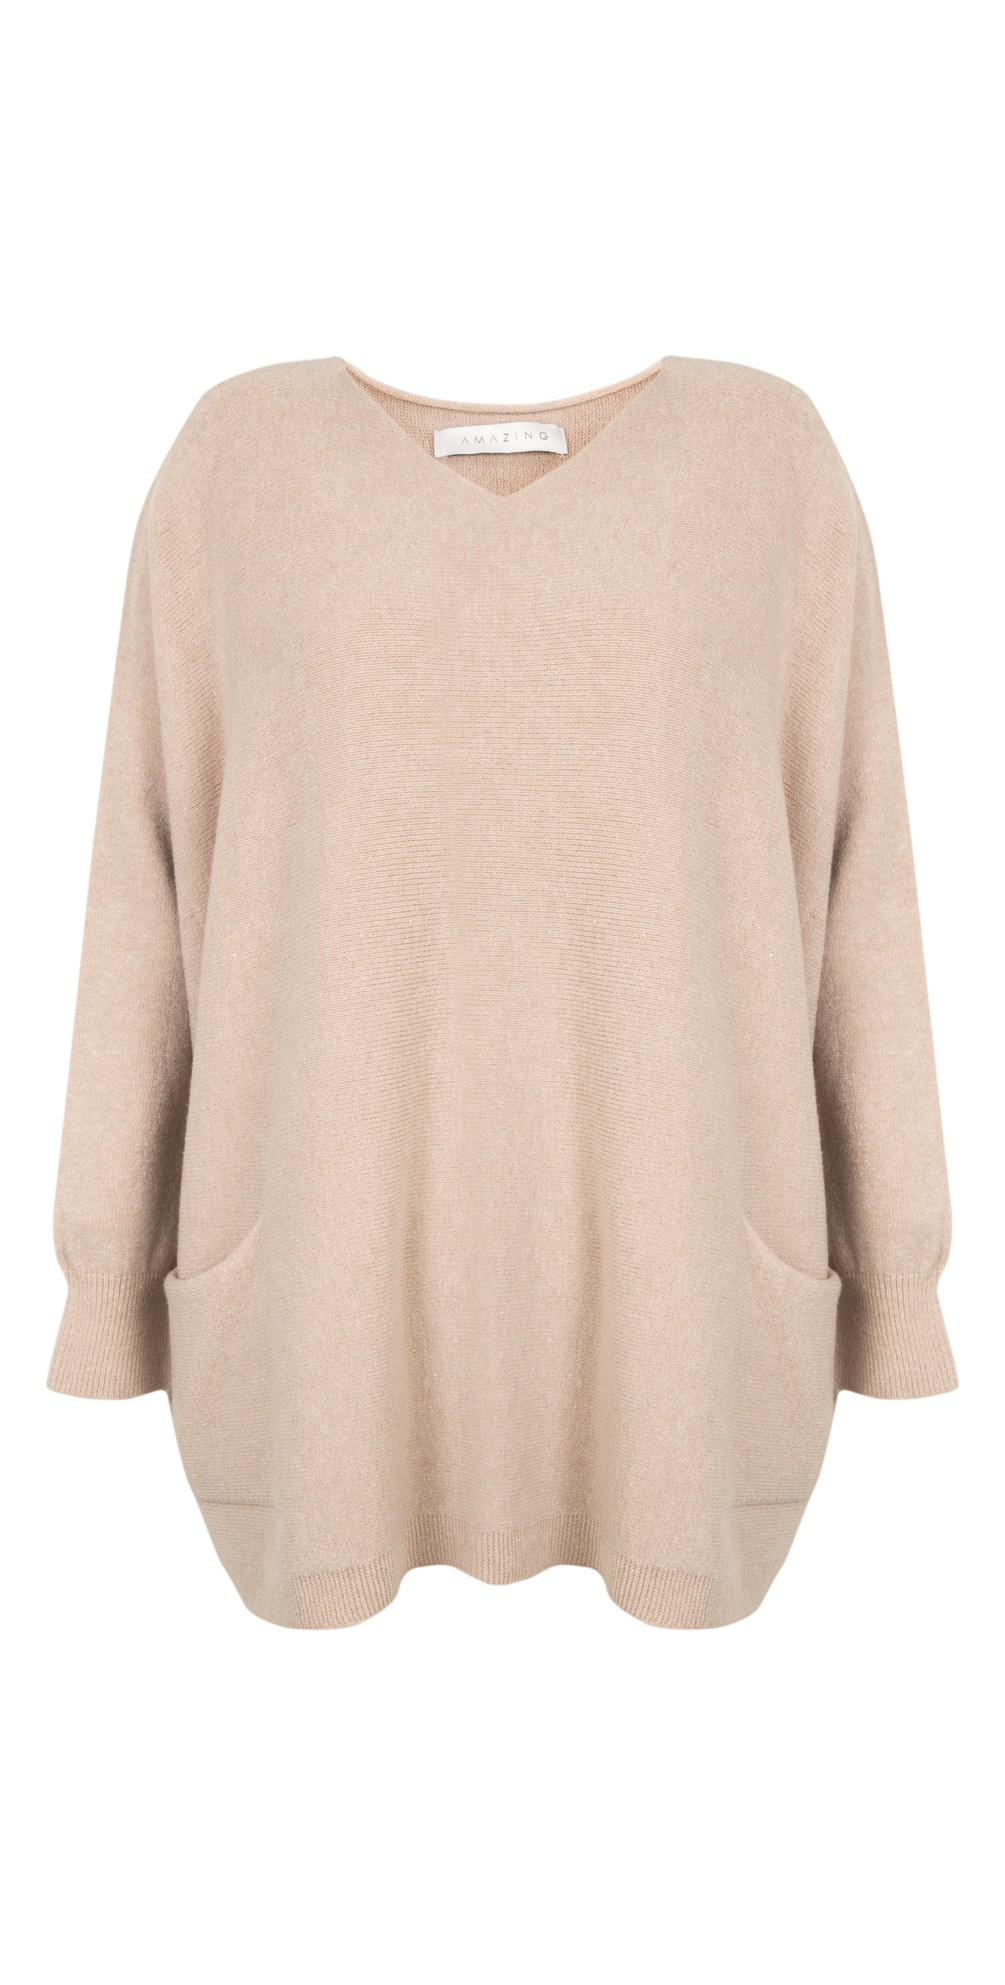 Carys Sweater Beige - Amazing Woman